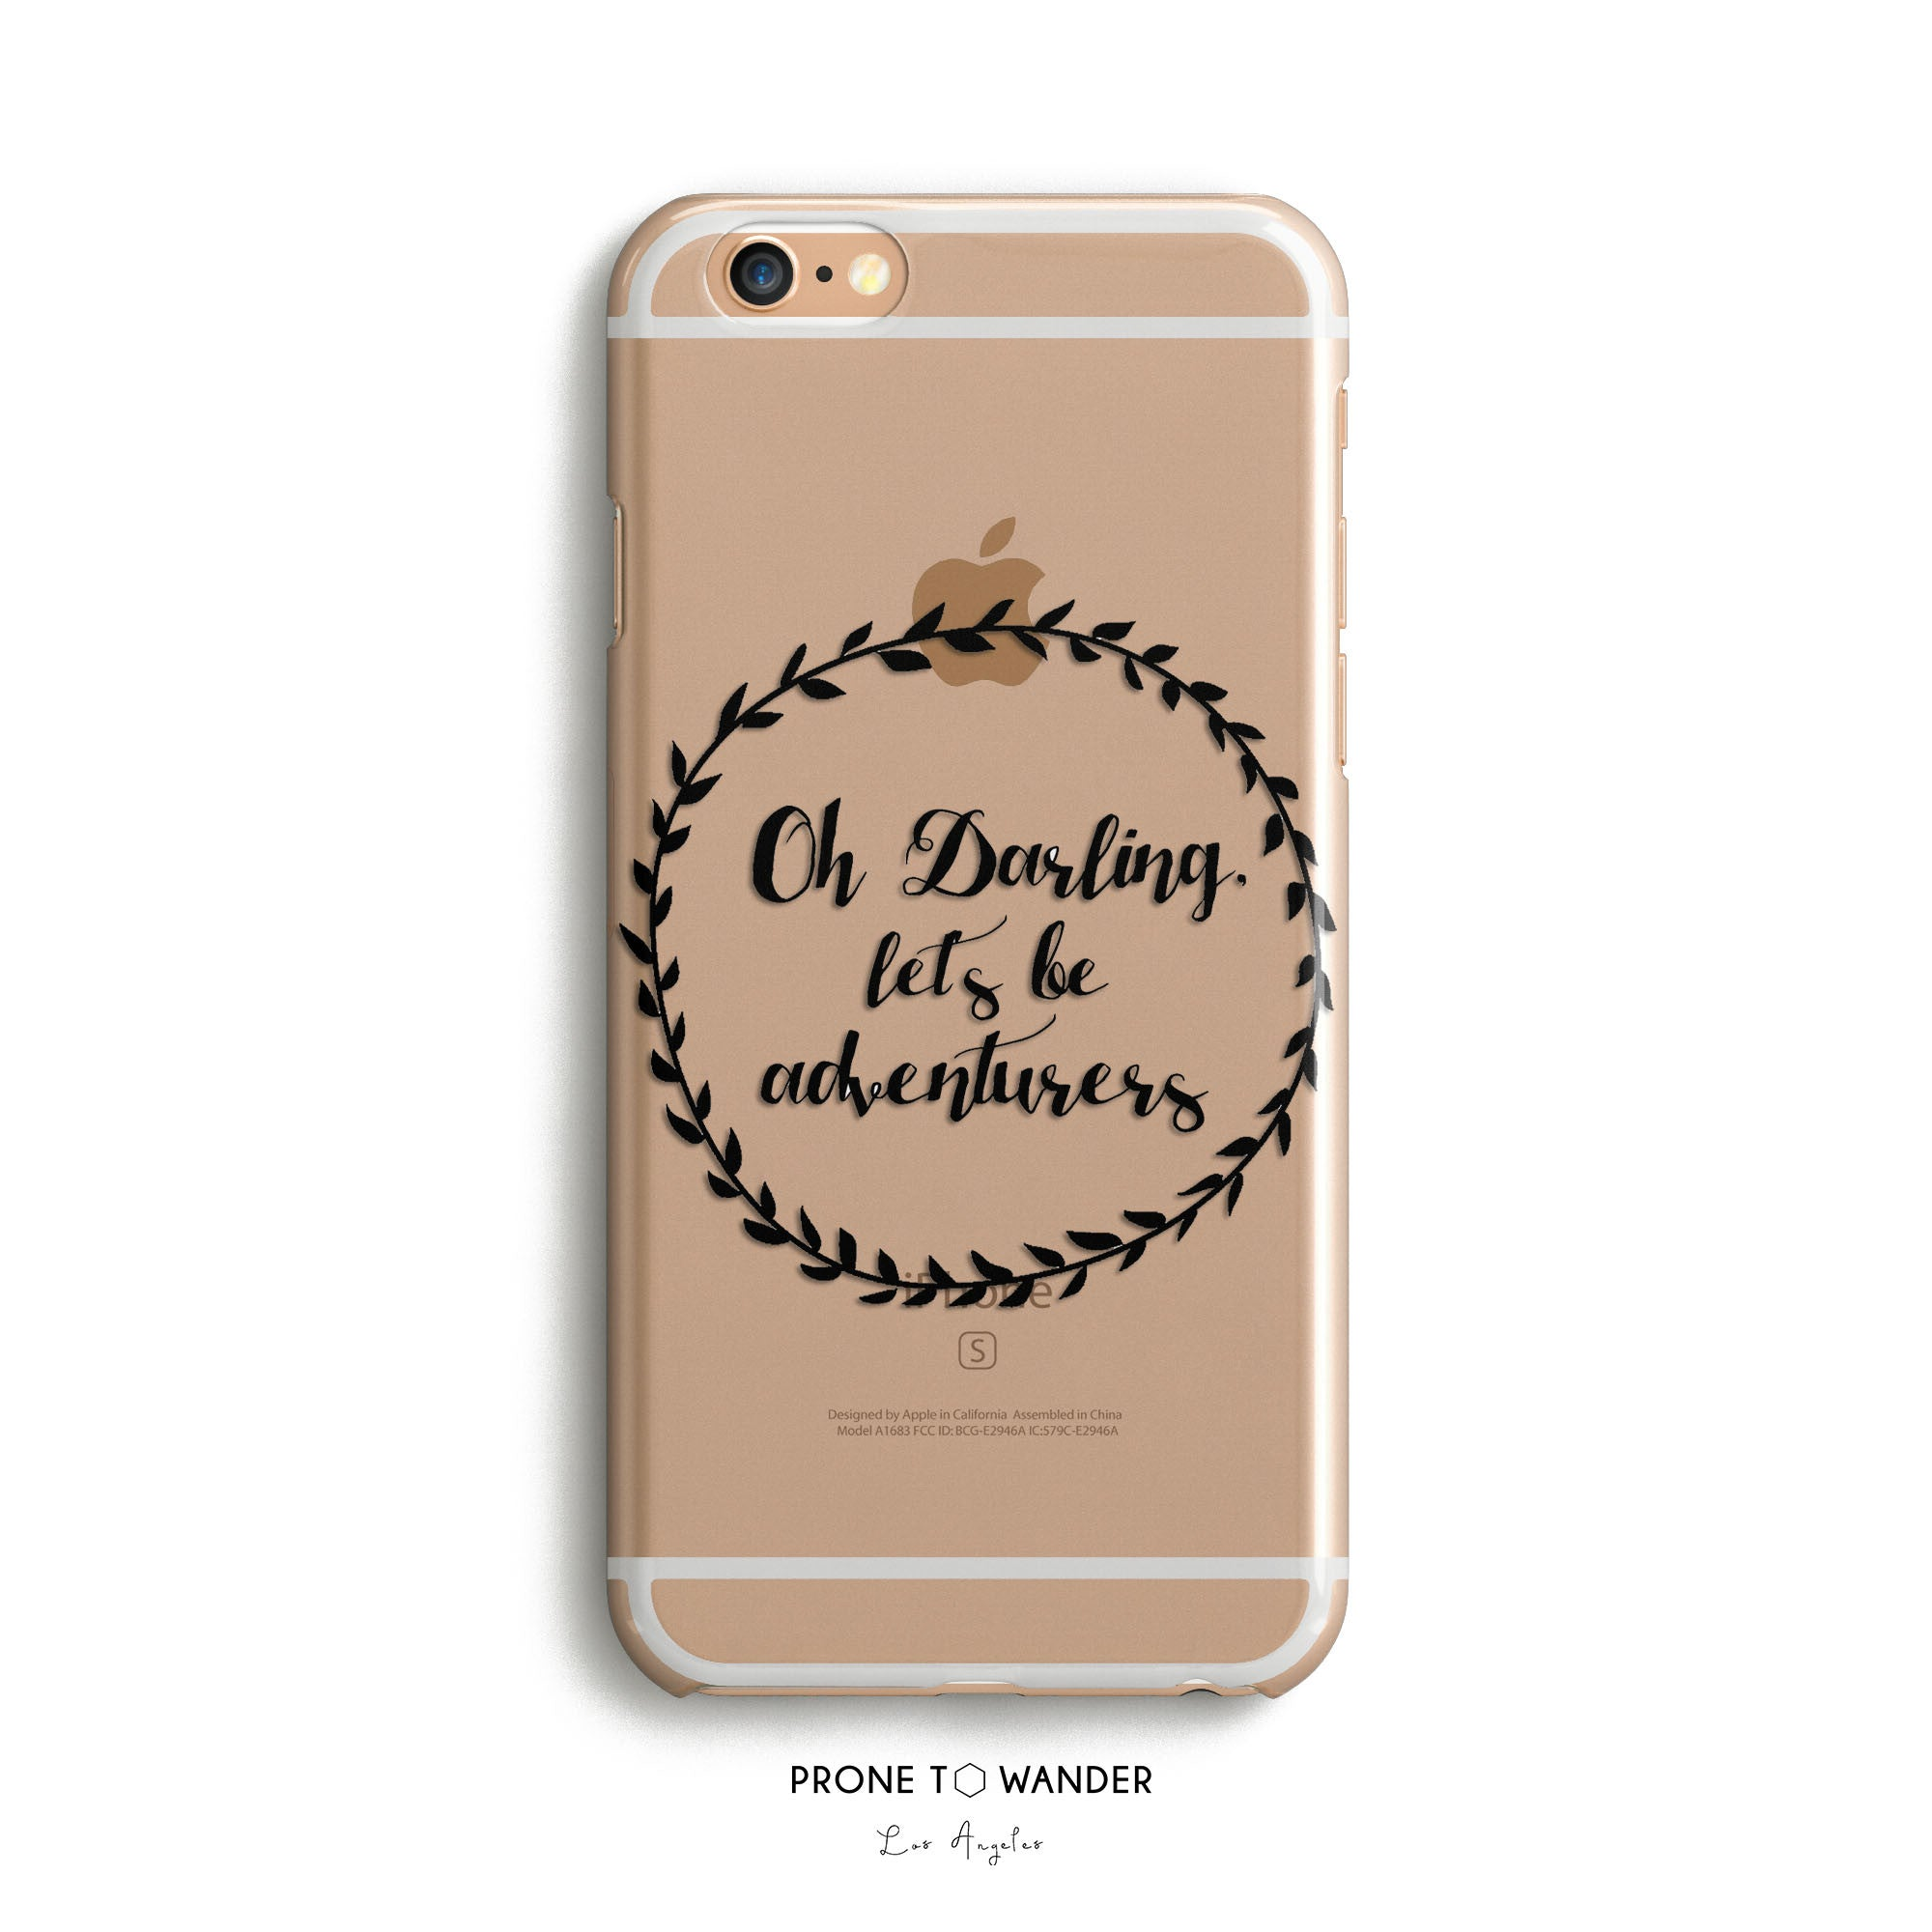 H21 - LET'S BE ADVENTURERS - Bible Verse Phone Case for Samsung and iPhone Cover